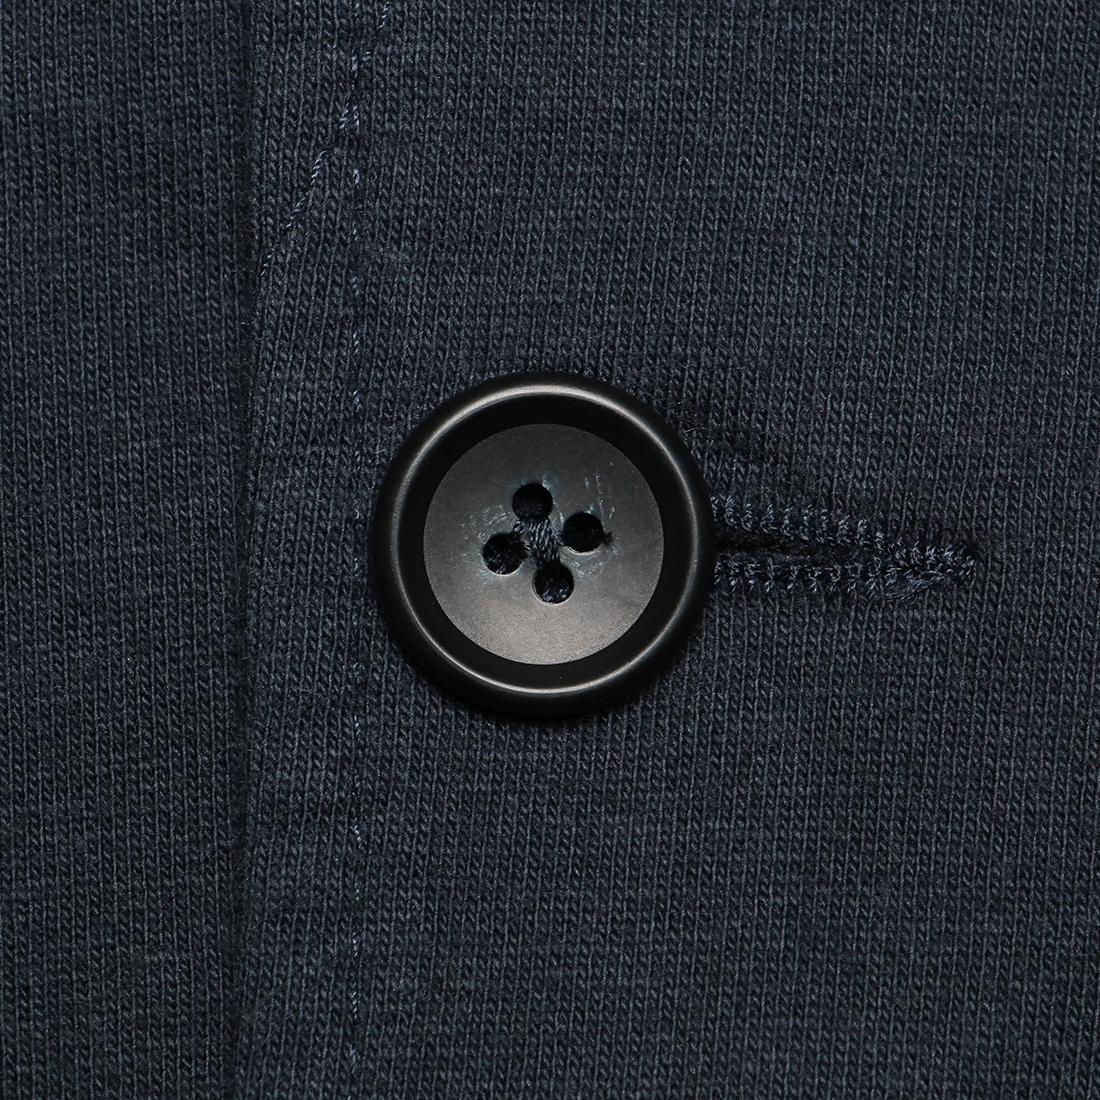 Engineered Garments Knit Jacket - French Terry FQ095: Dark Navy